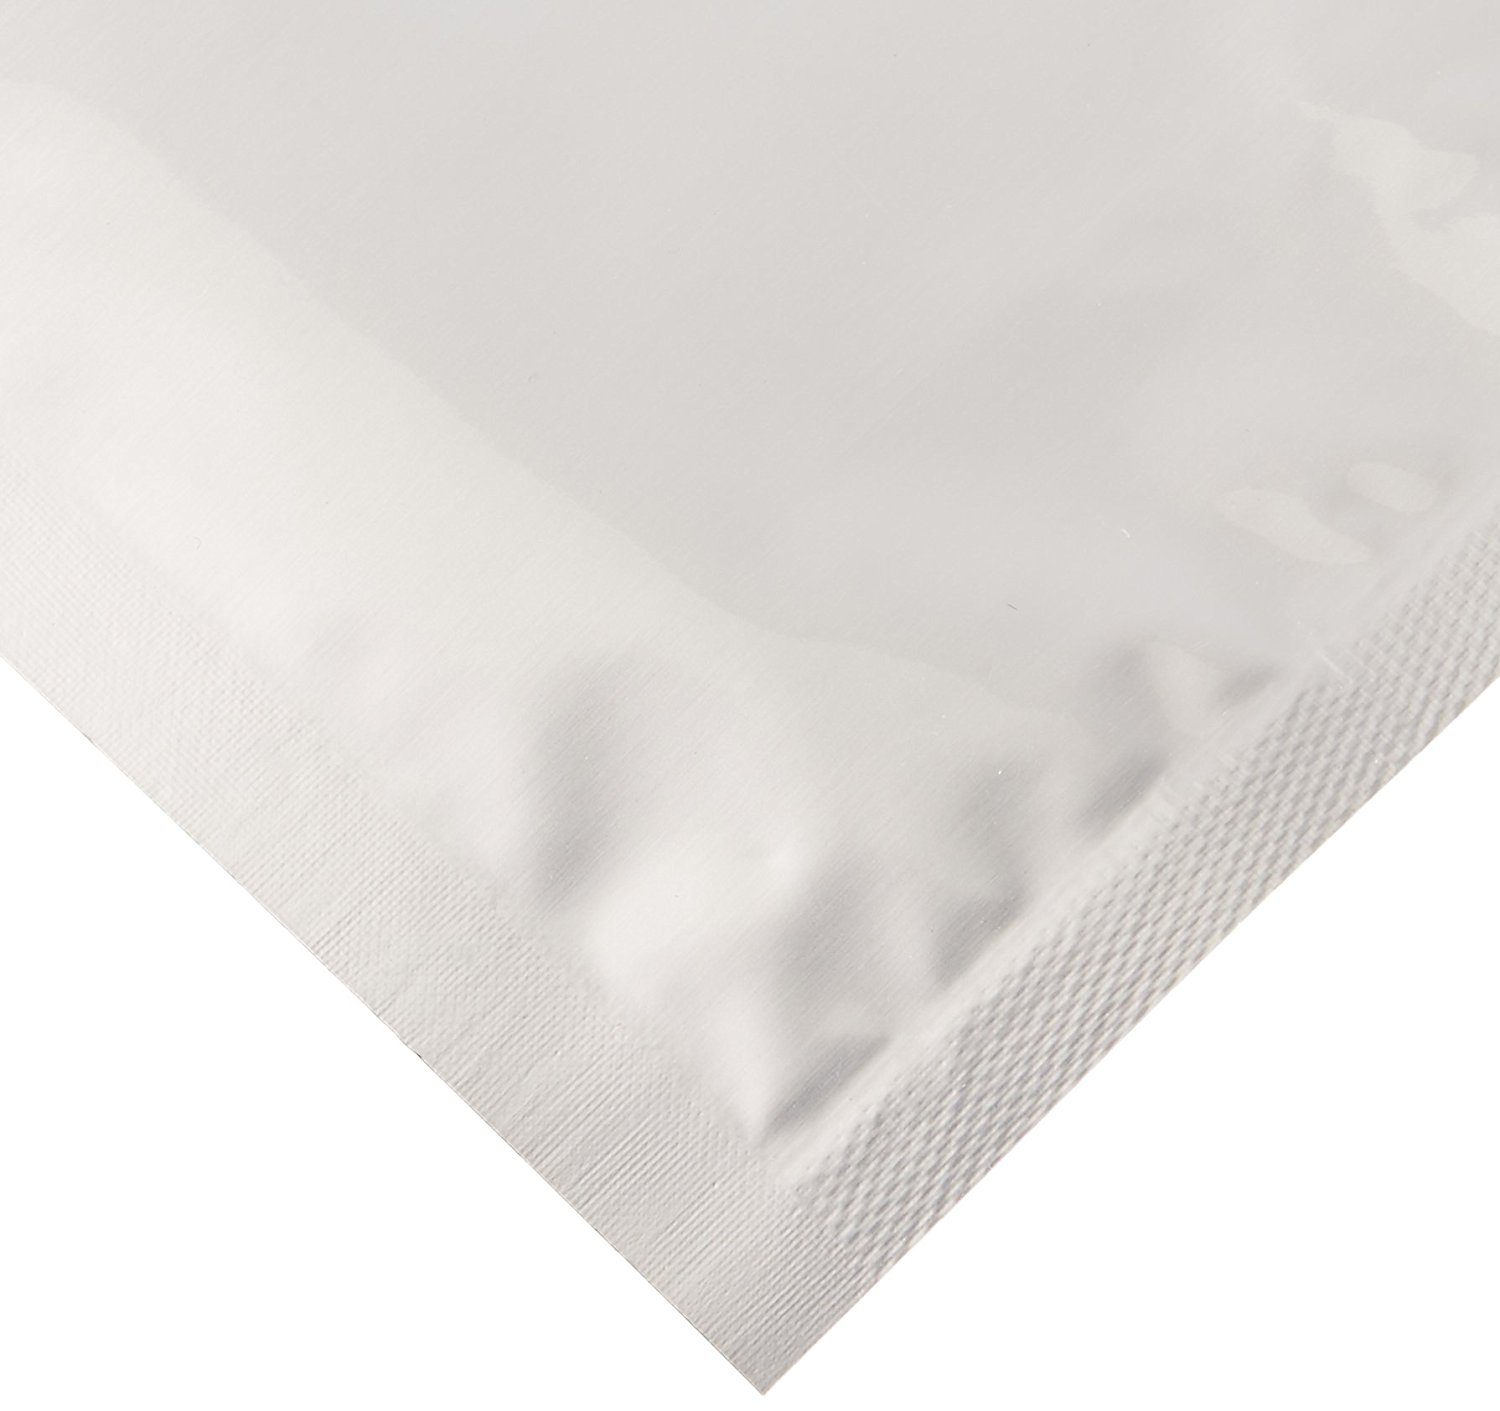 40 - 1 Quart Mylar Bags & Oxygen Absorbers for Dried Food...